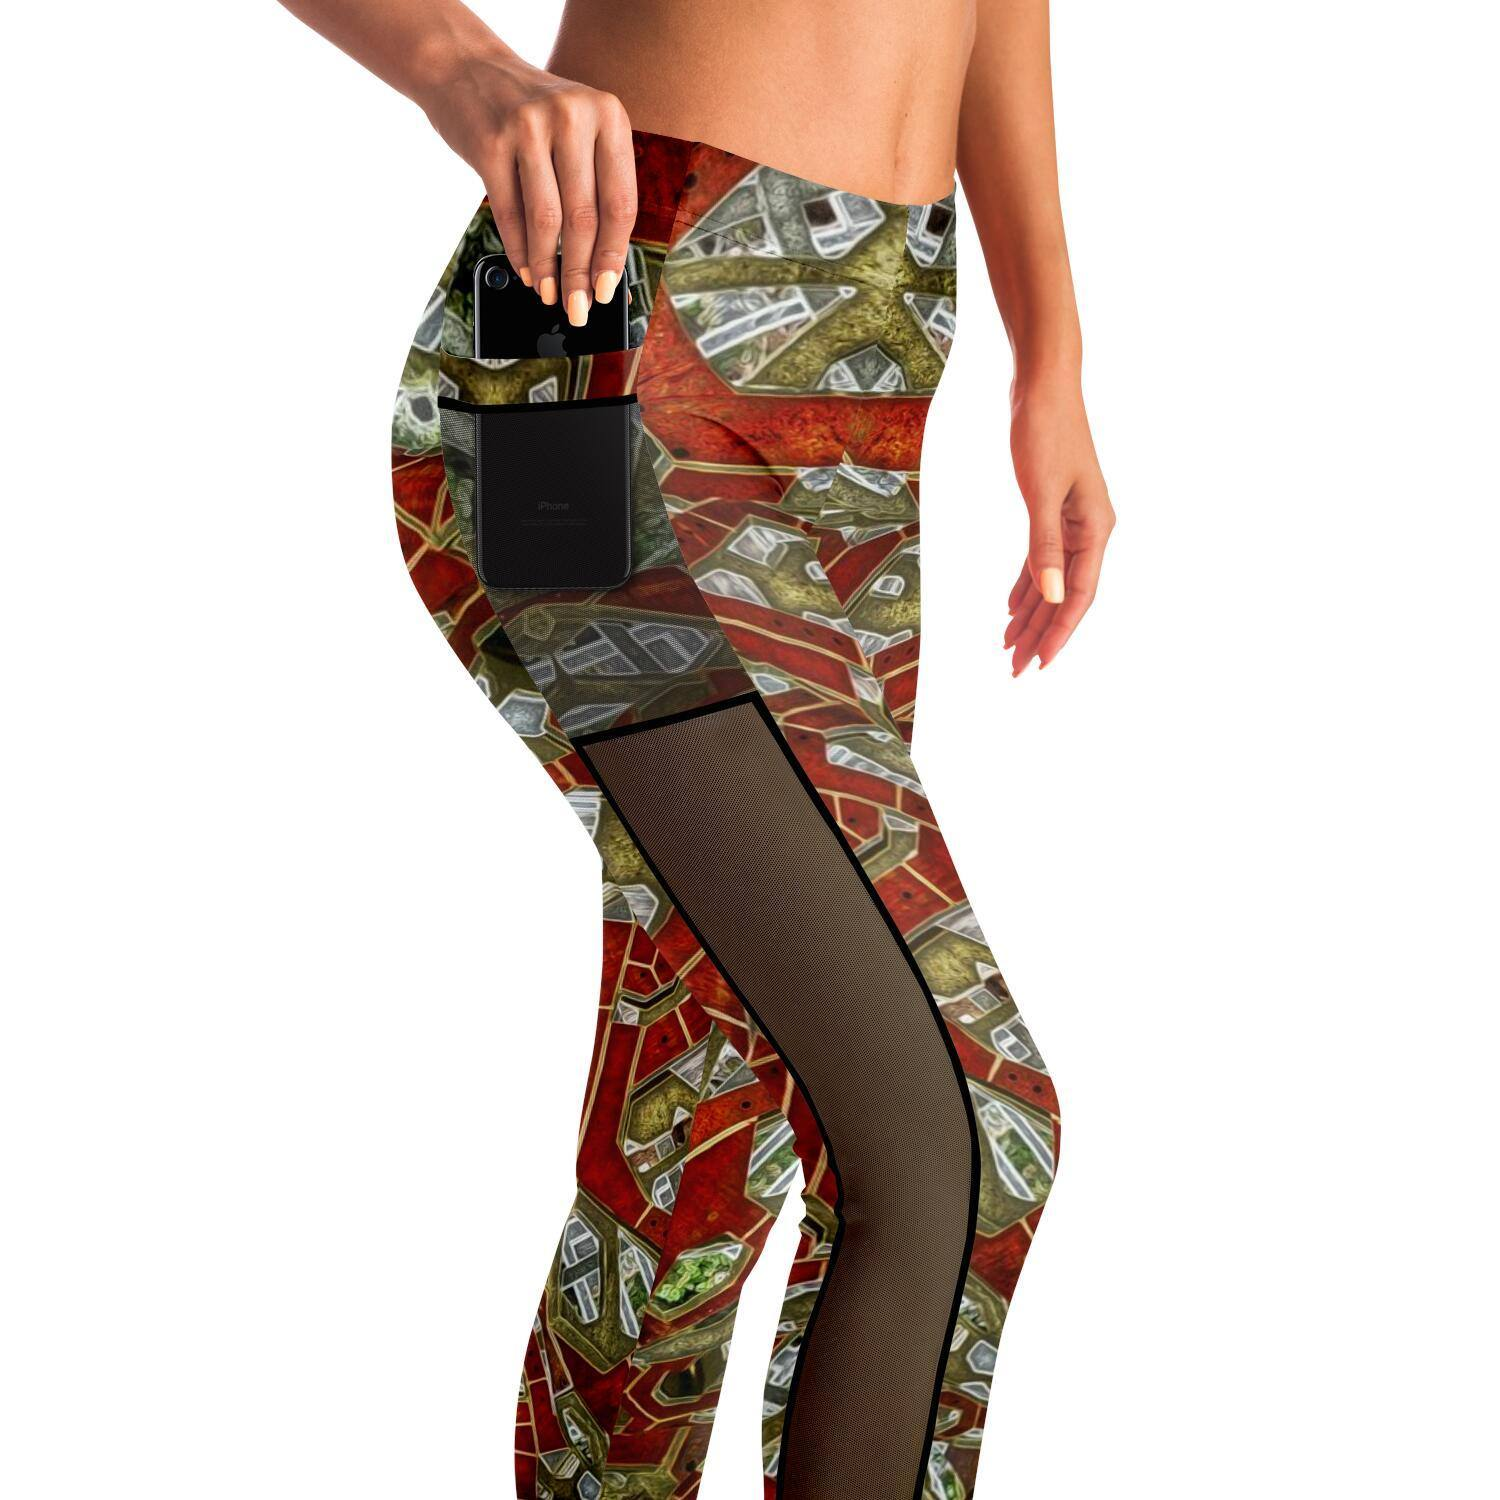 CERAMIC DREAMS MESH POCKET PREMIUM YOGA LEGGINGS